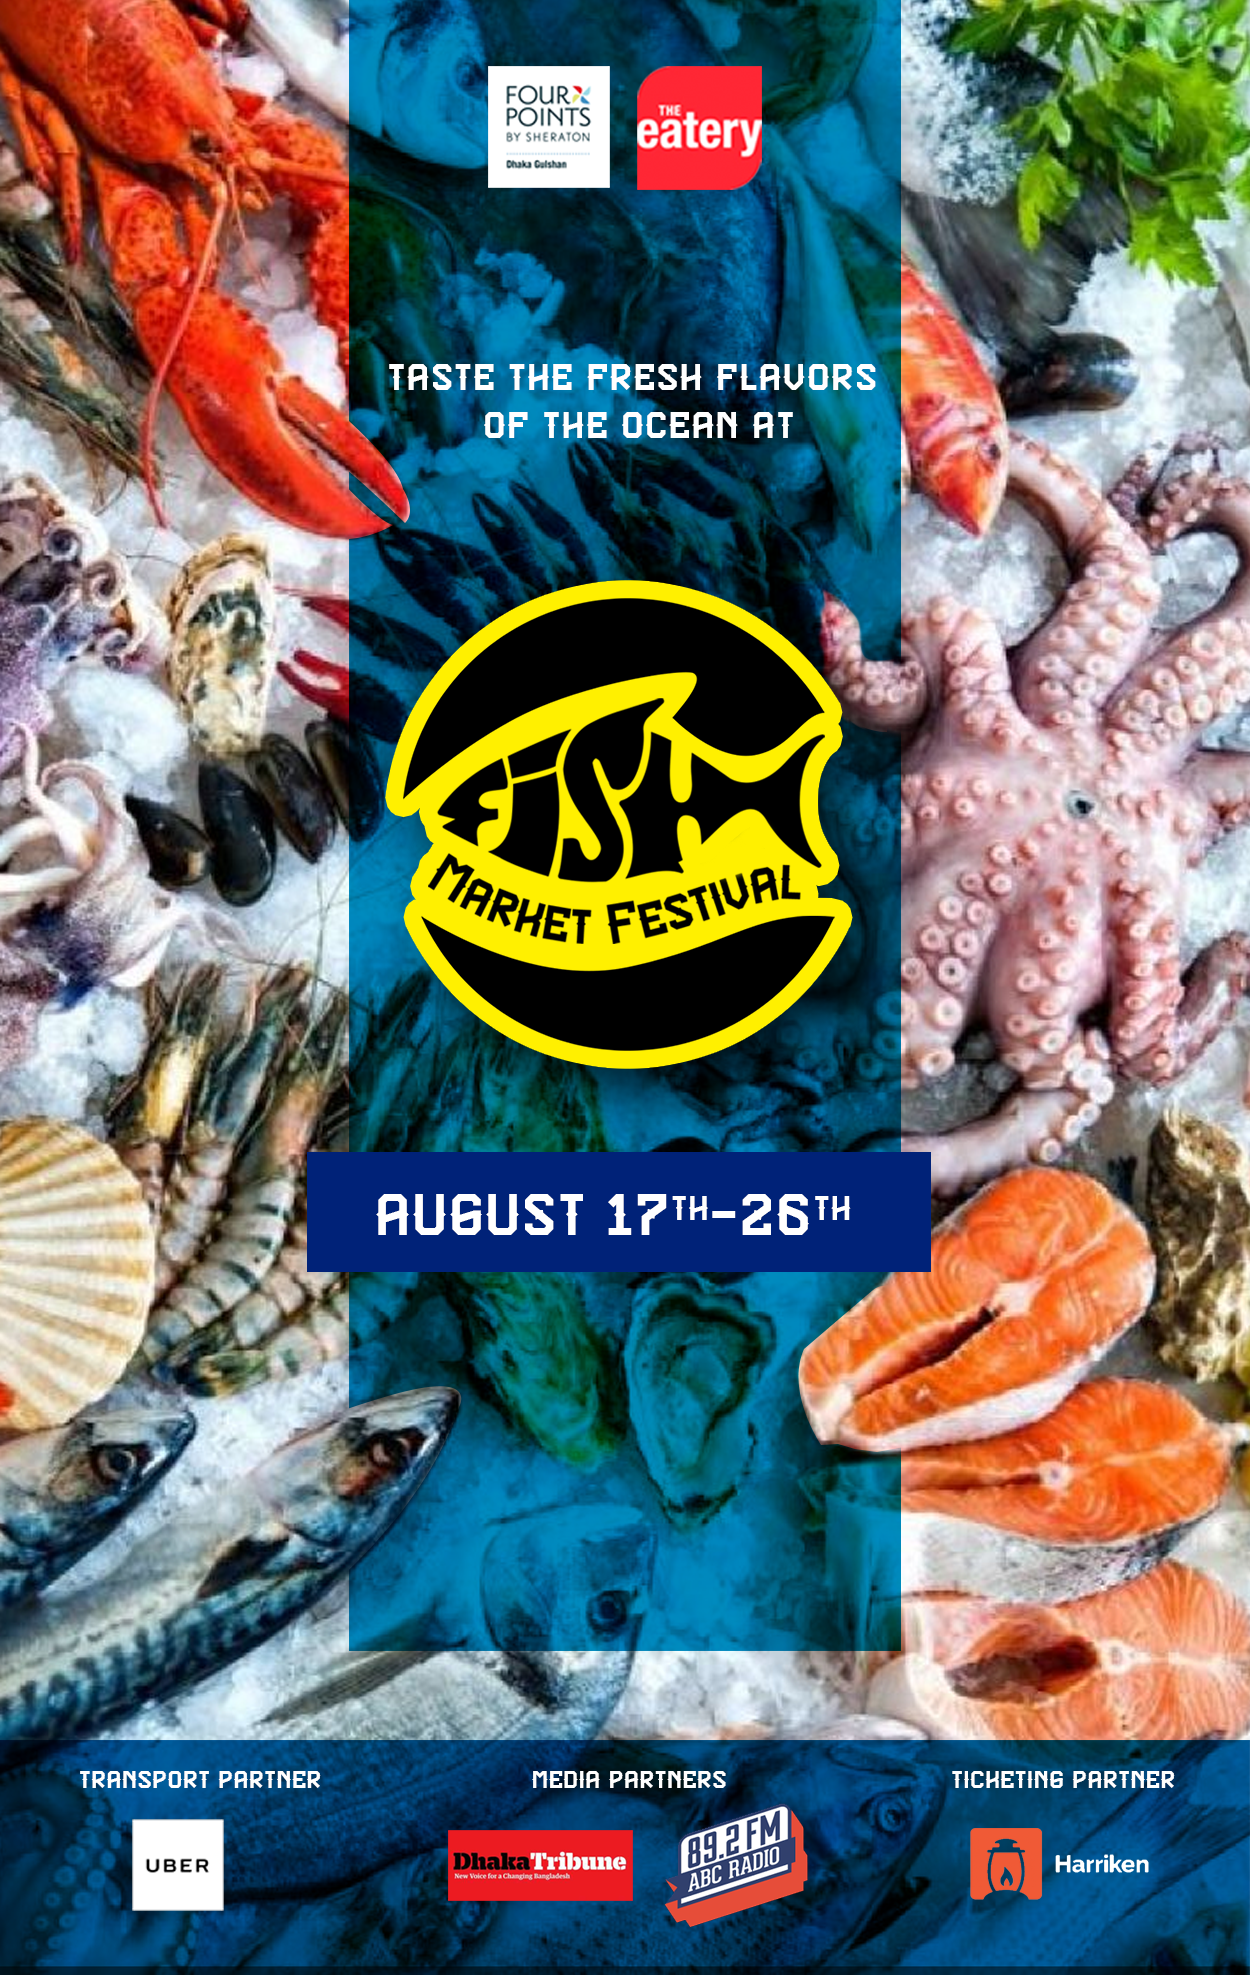 Win Vouchers Worth Tk 8000 For The Fish Market Festival At Four Points By Sheraton Dhaka